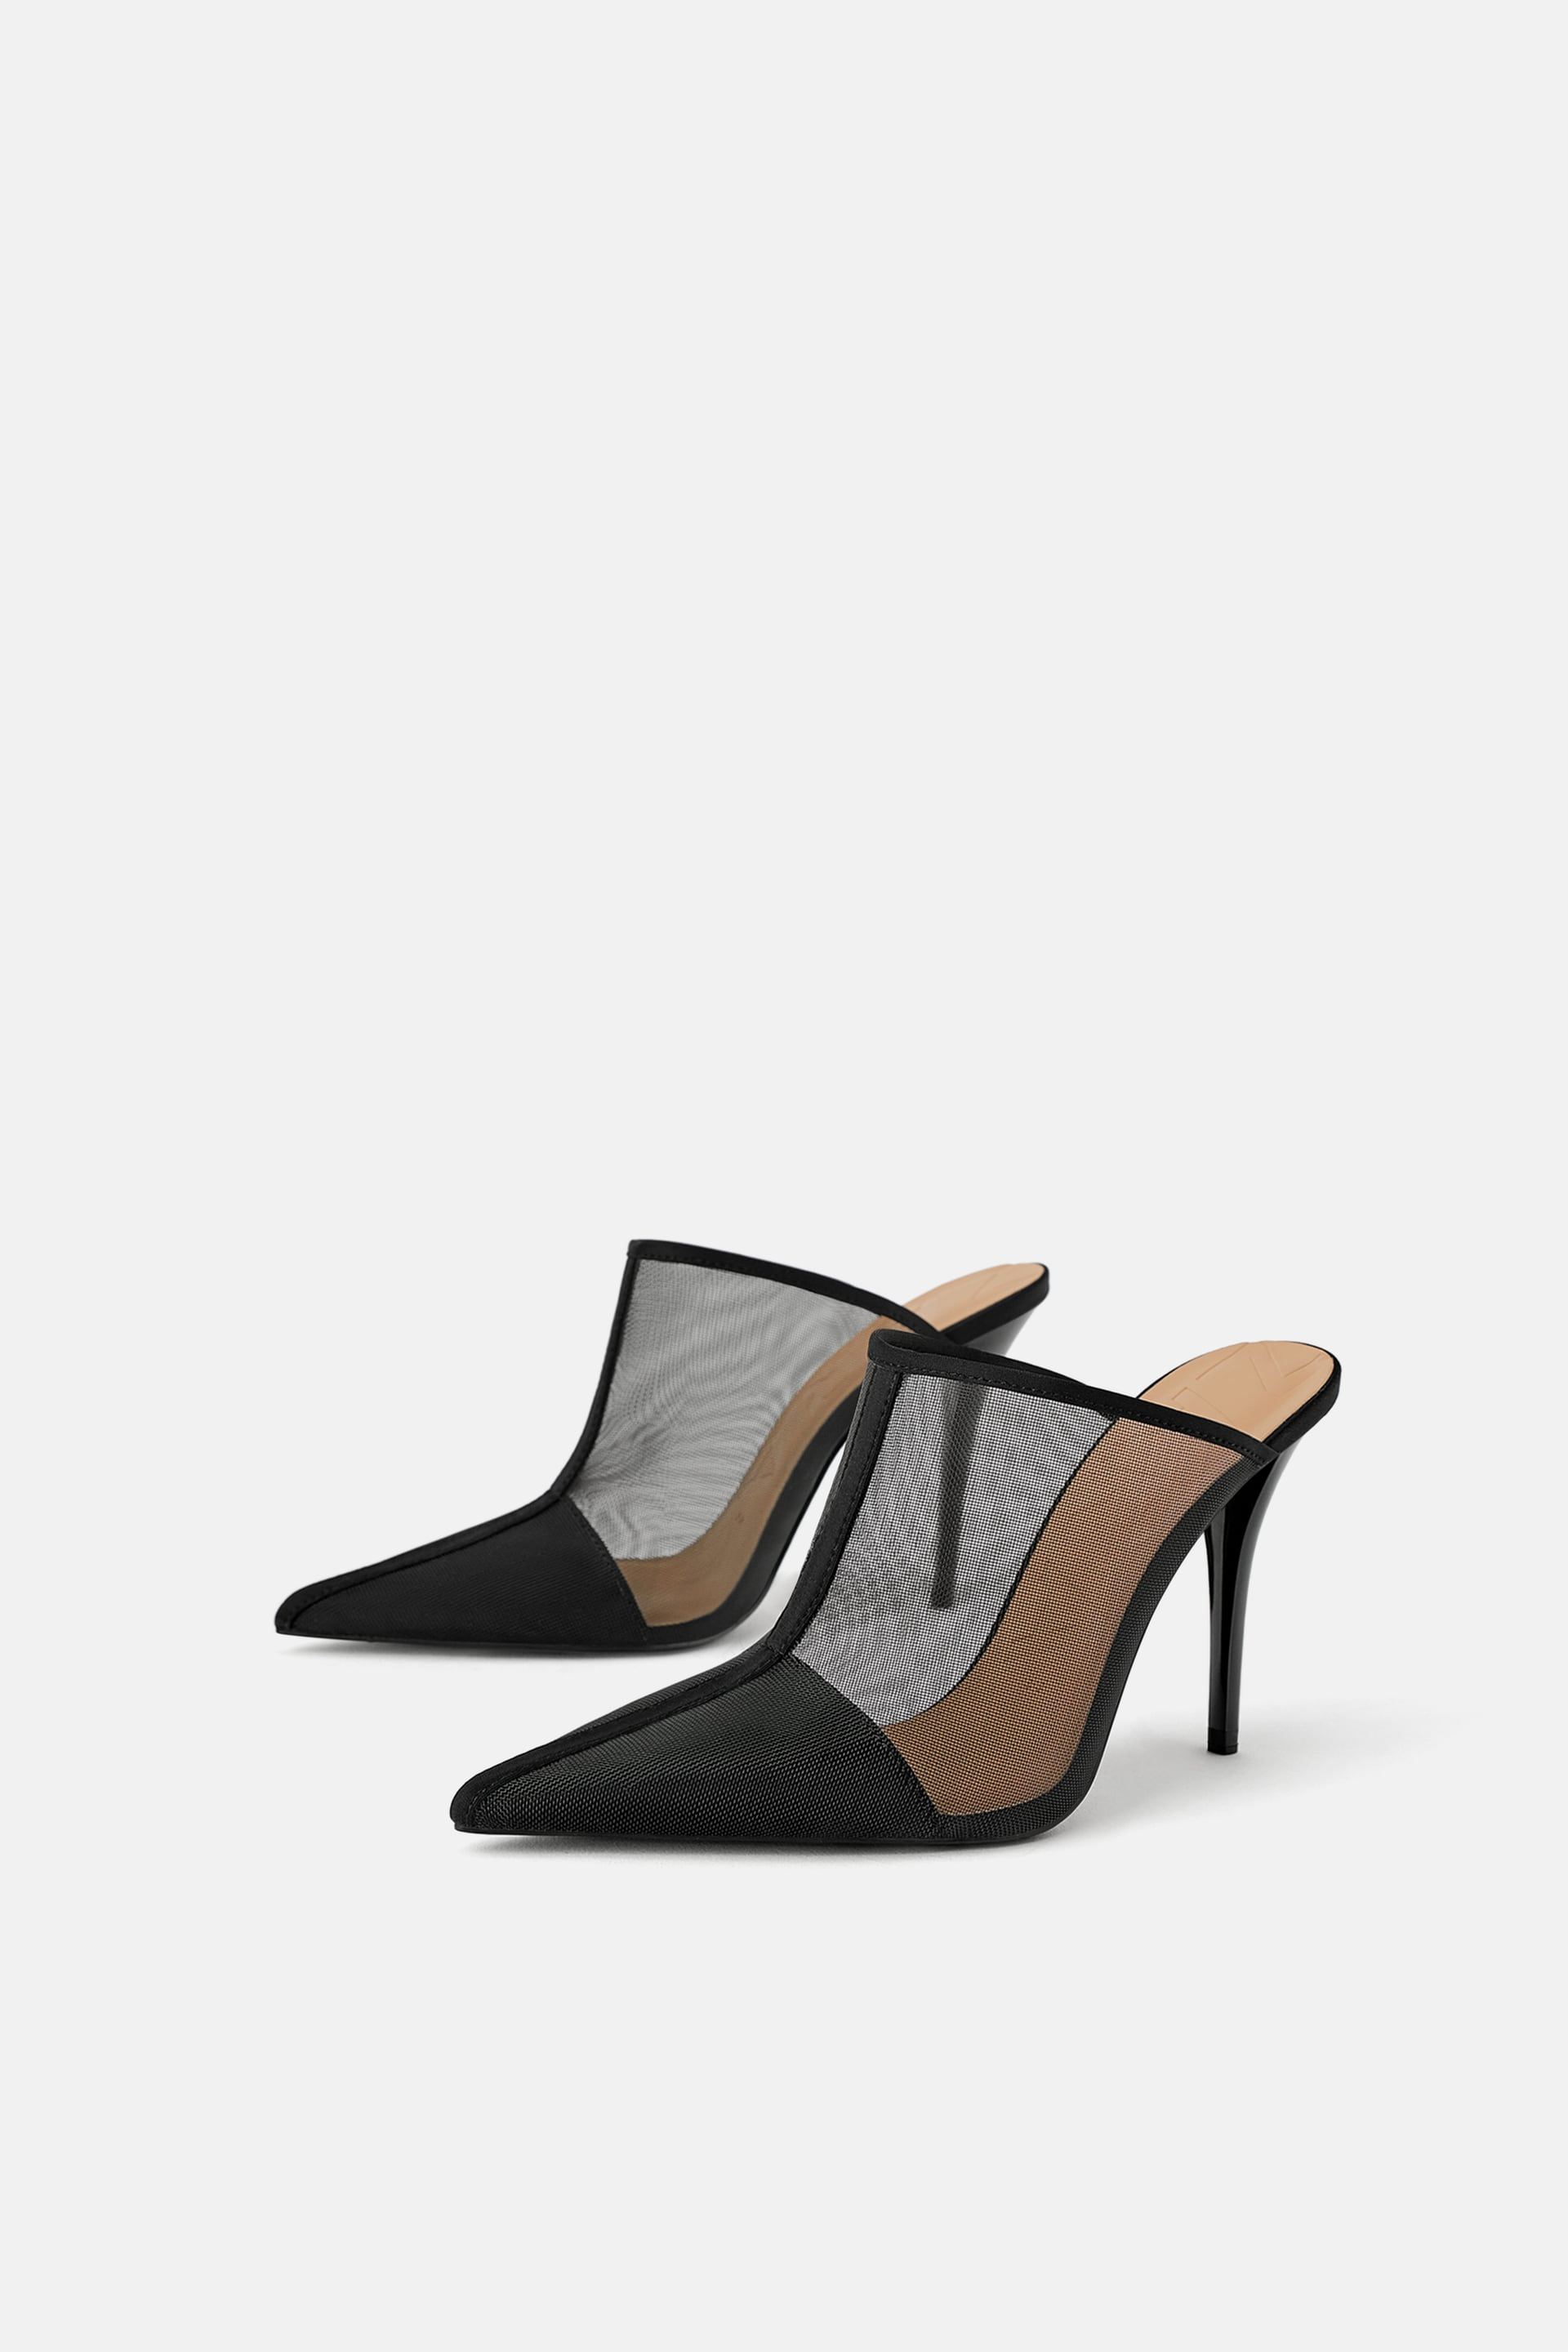 Heeled Mesh Mules View All Shoes Woman by Zara